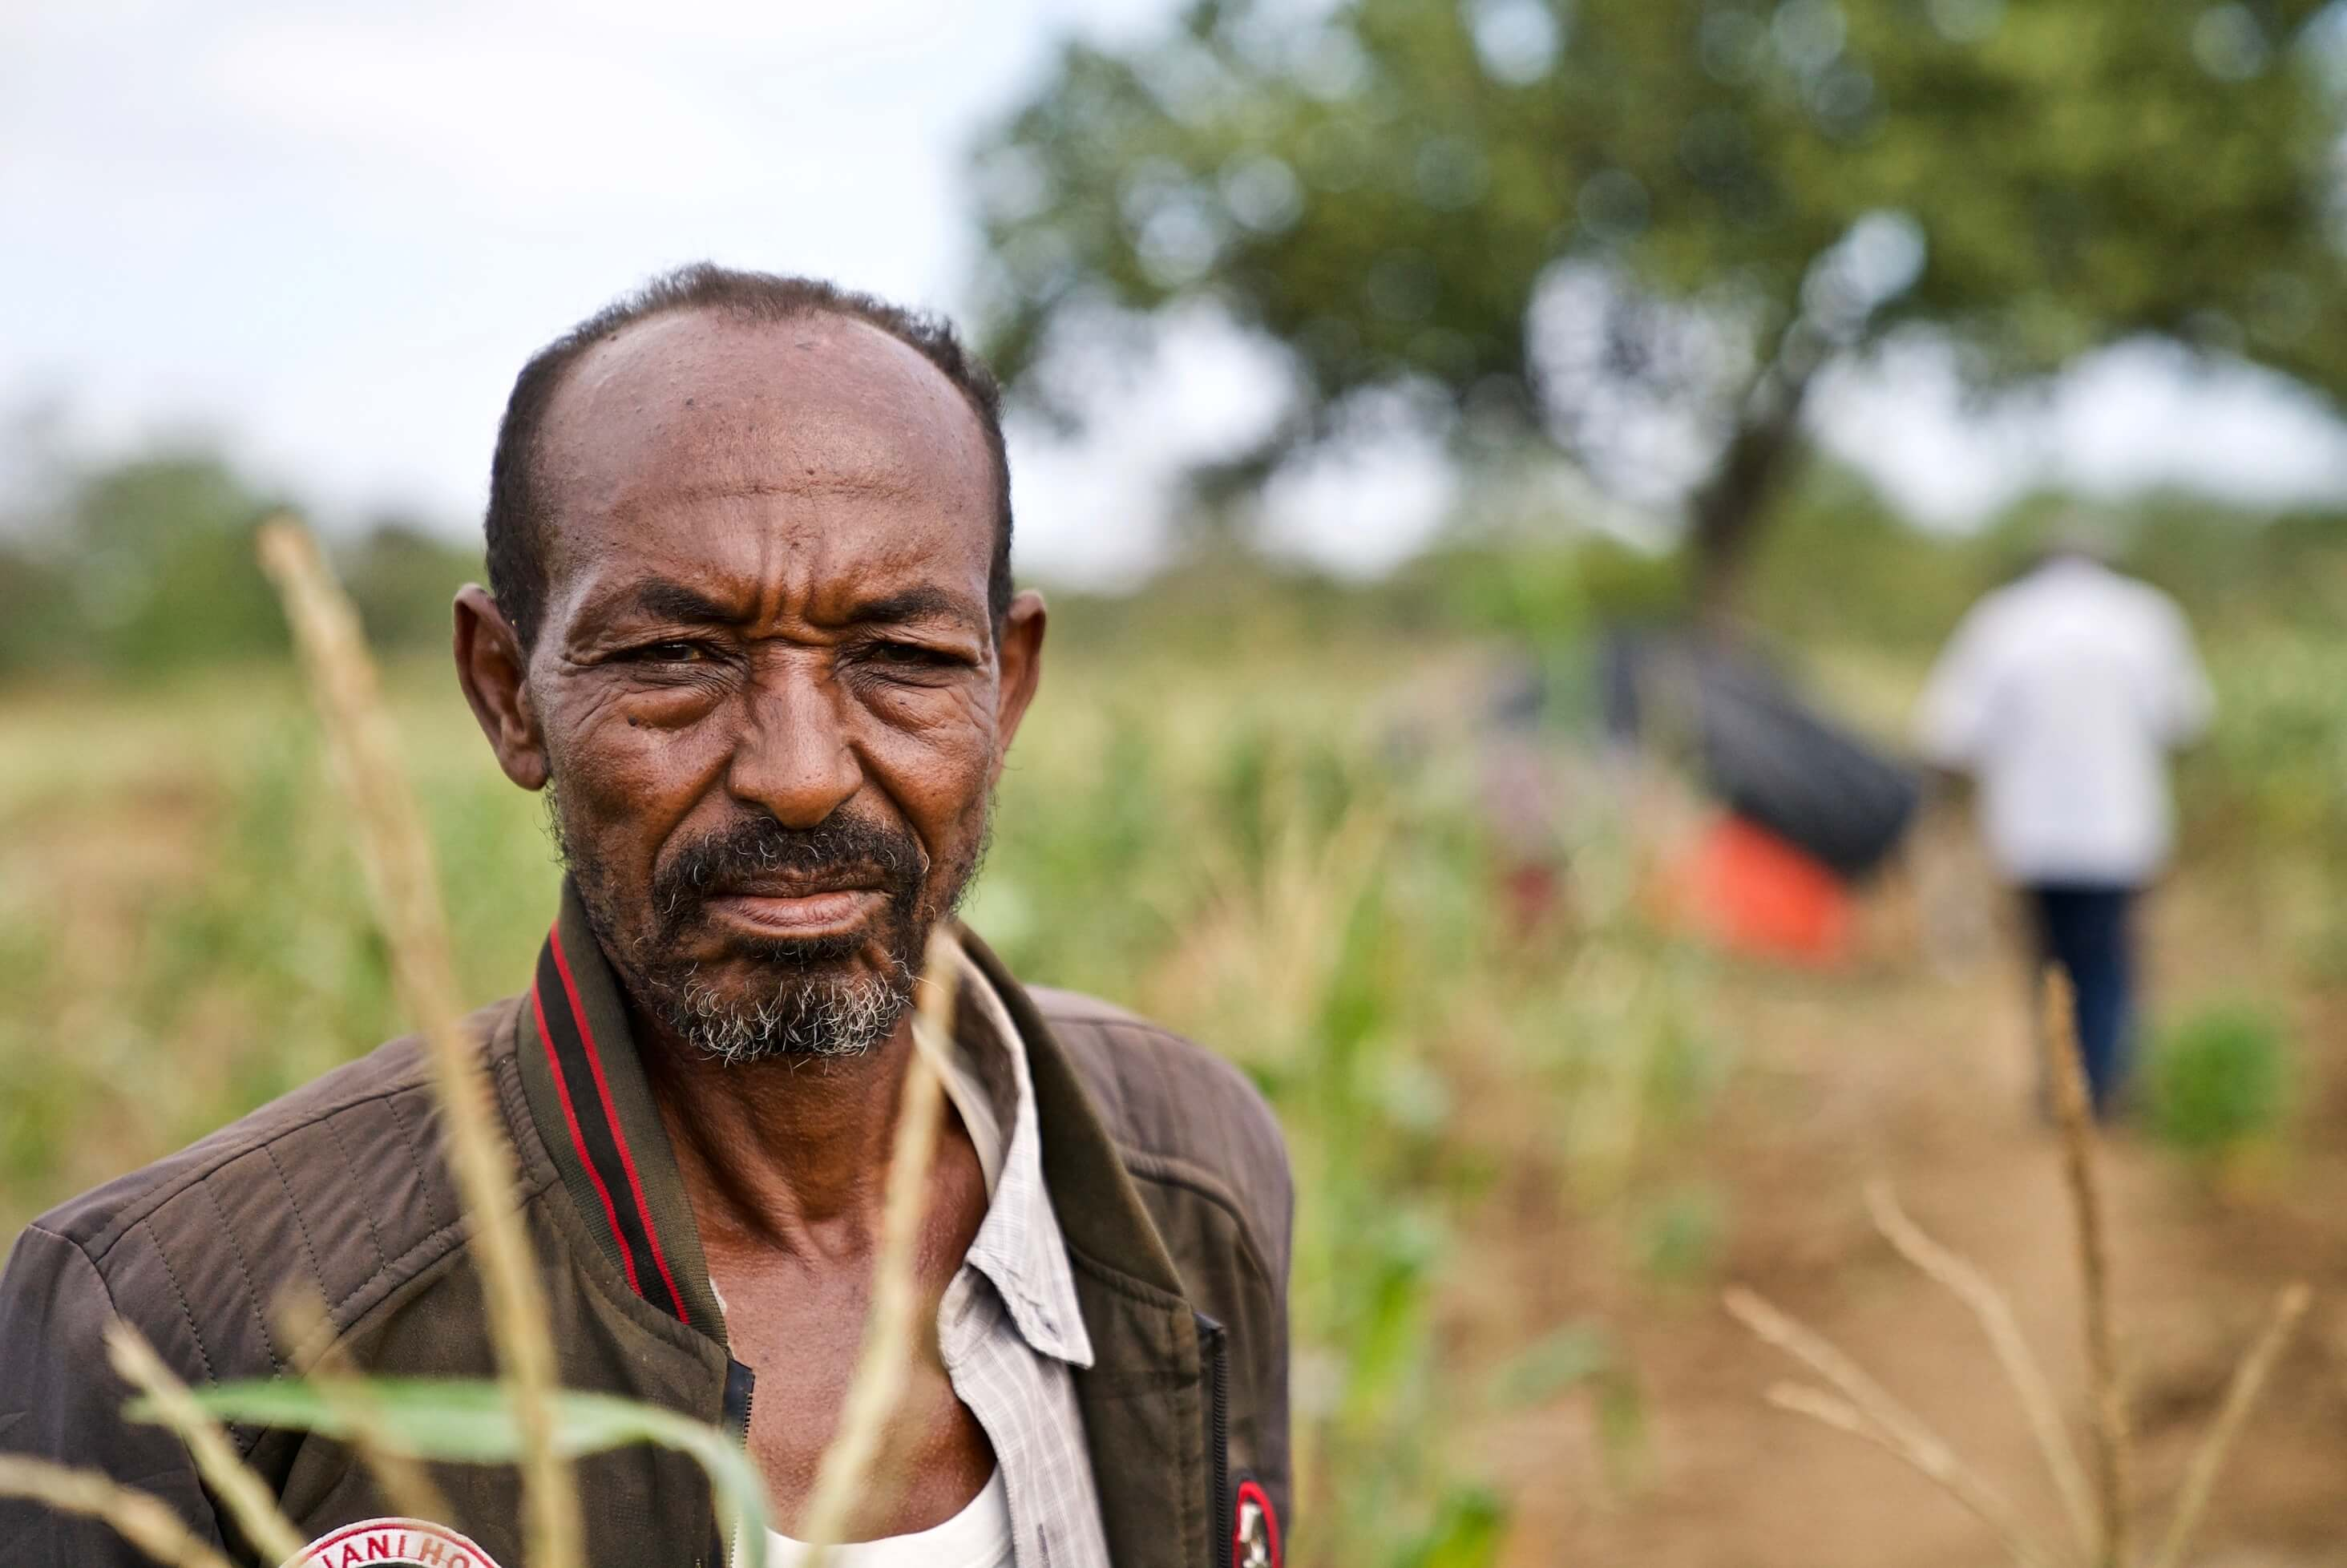 Image of Ali Bila Waqo, whose crops have been devastated by locusts